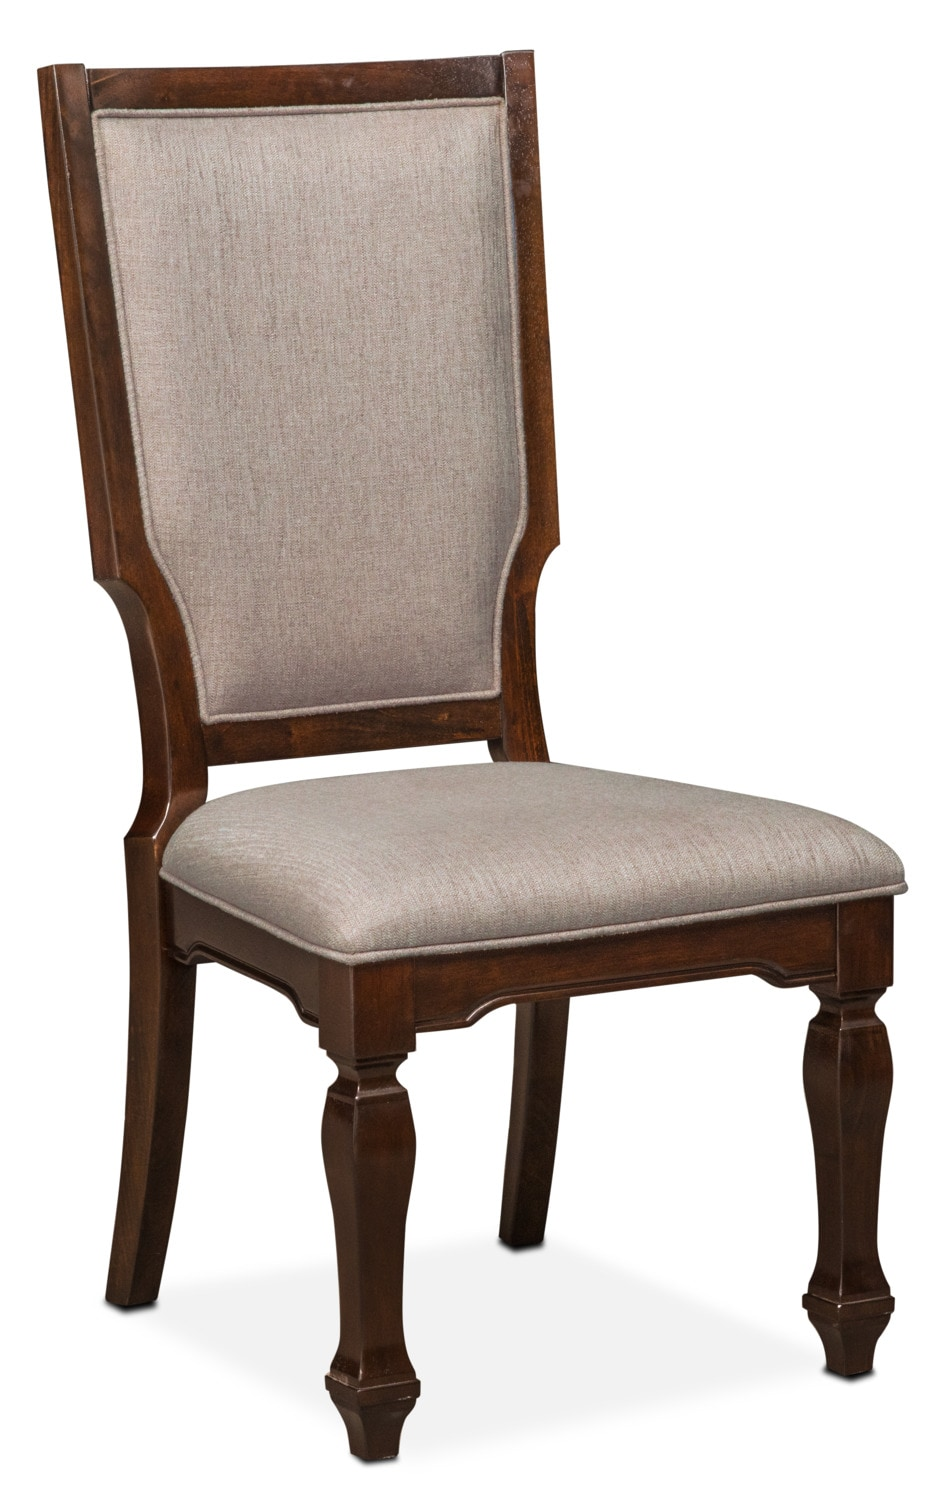 Dining Room Furniture - Vienna Upholstered Side Chair - Merlot